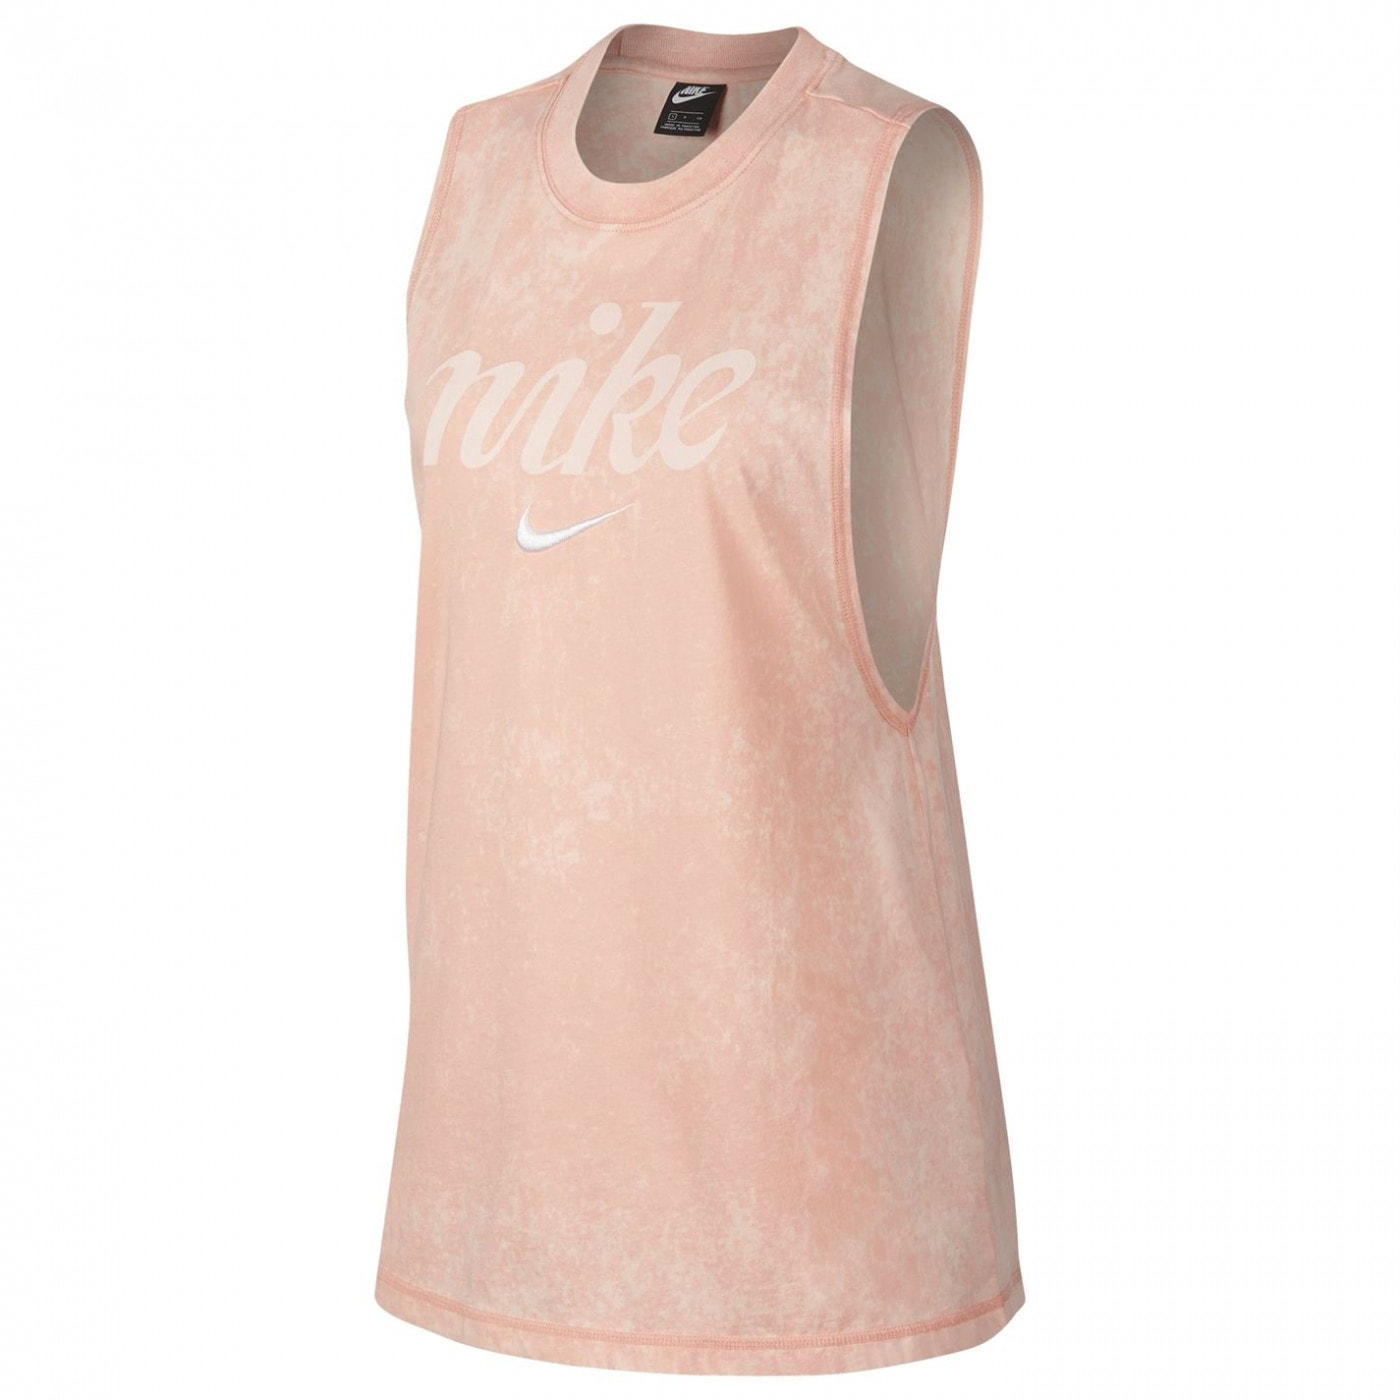 Nike Wash Tank Top Ladies